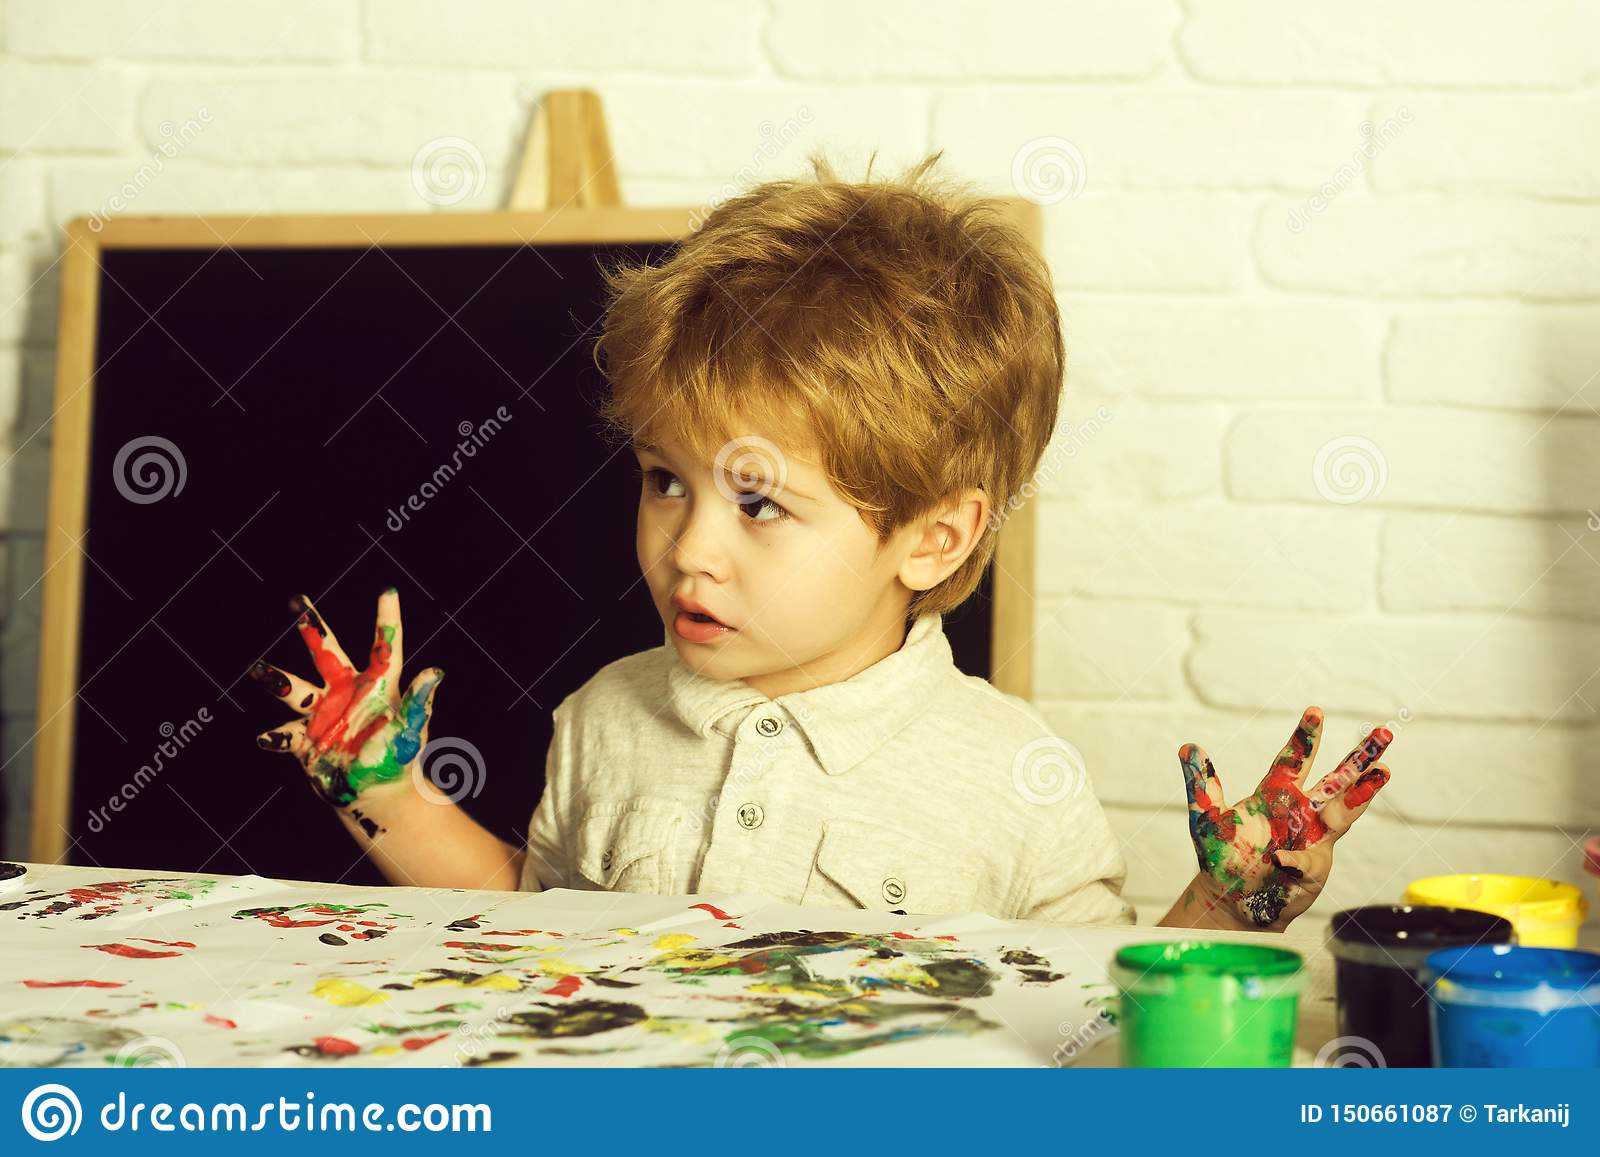 Art therapy. Drawing as a treatment for frustration. The boy draws his fingers. Child with paints.